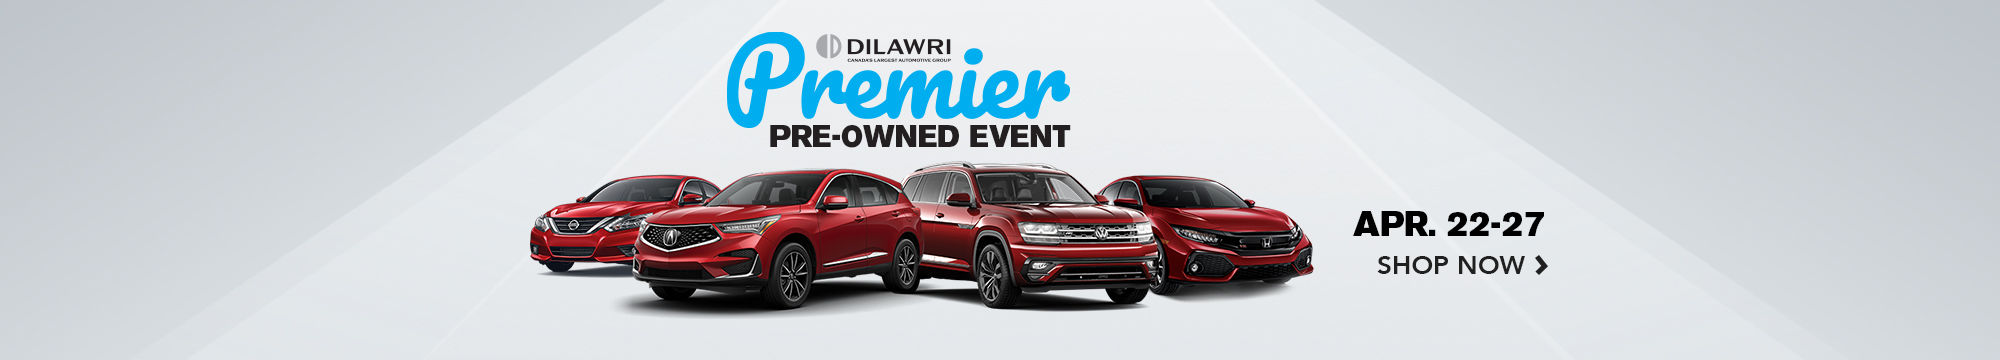 Premier Pre-Owned Sales Event